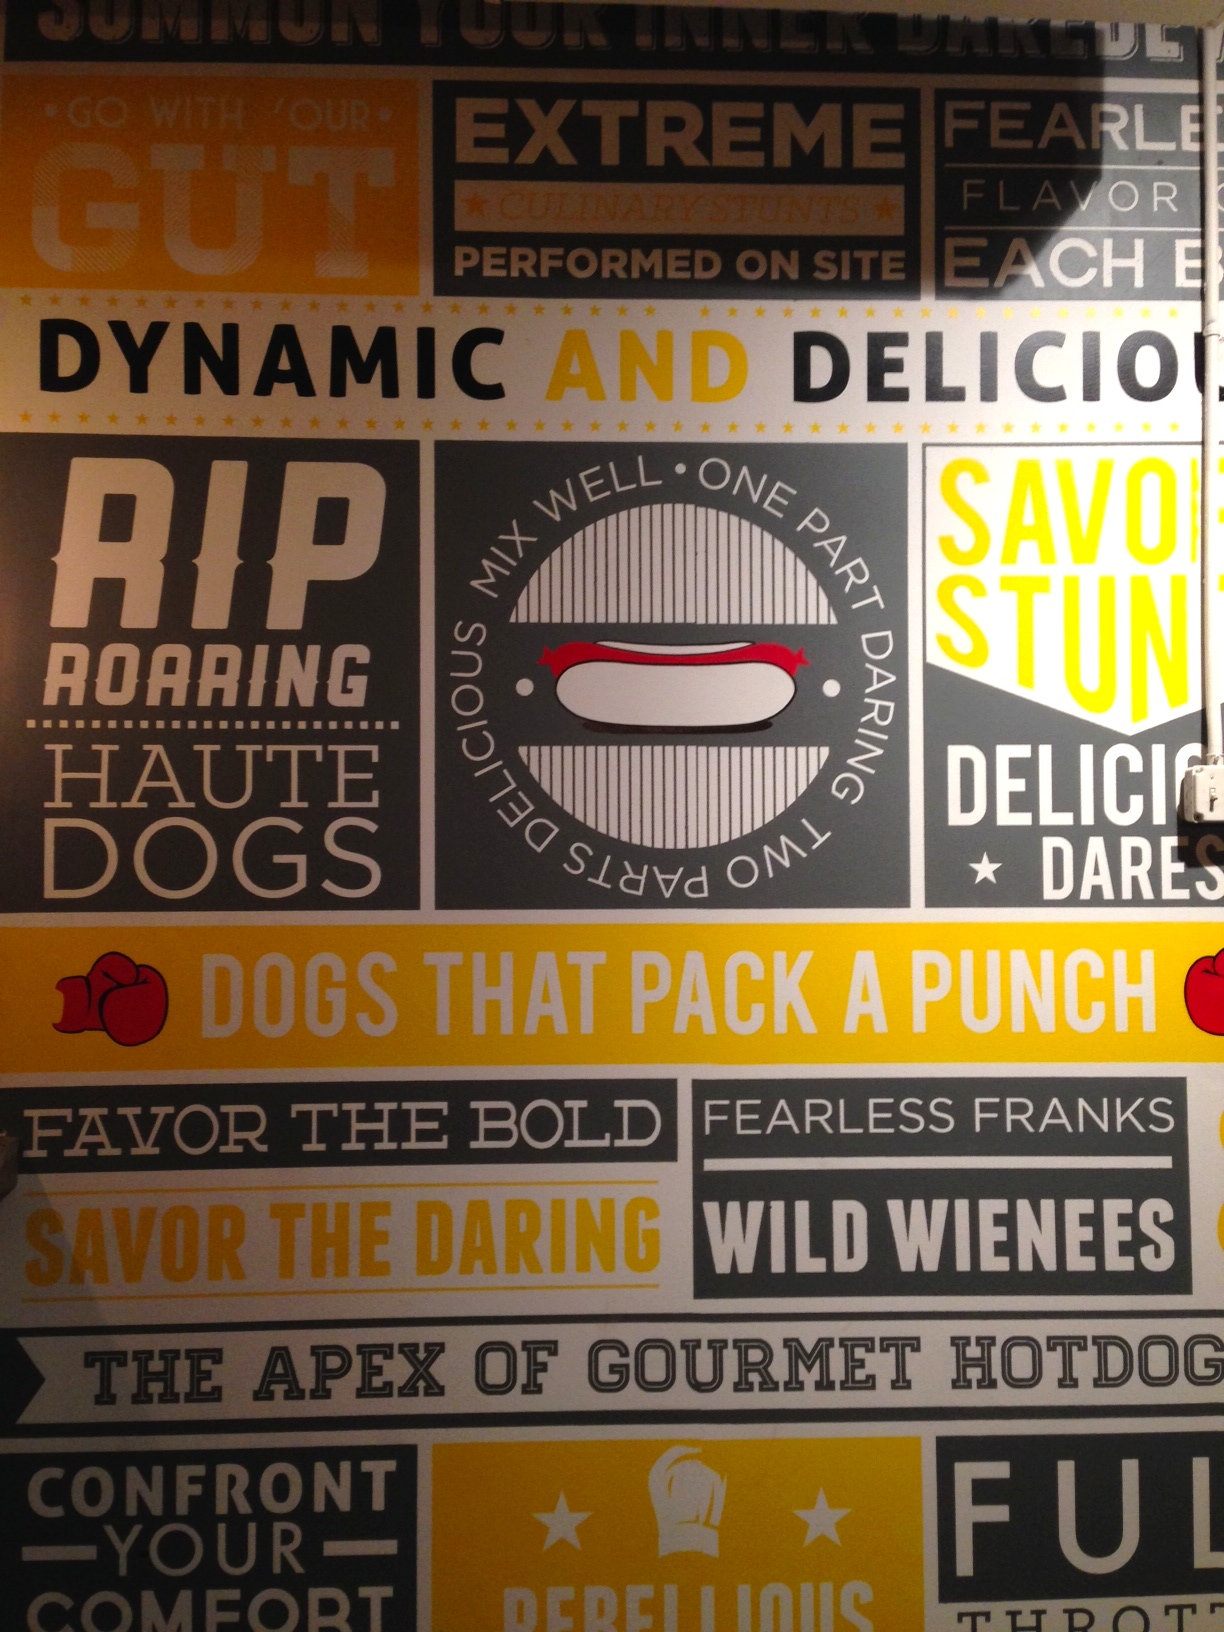 Hand Painted Graphic Mural | Collaboration with Andrew Kern | Latex Paint | Dare Devil Dogs Restaurant | Columbus, OH